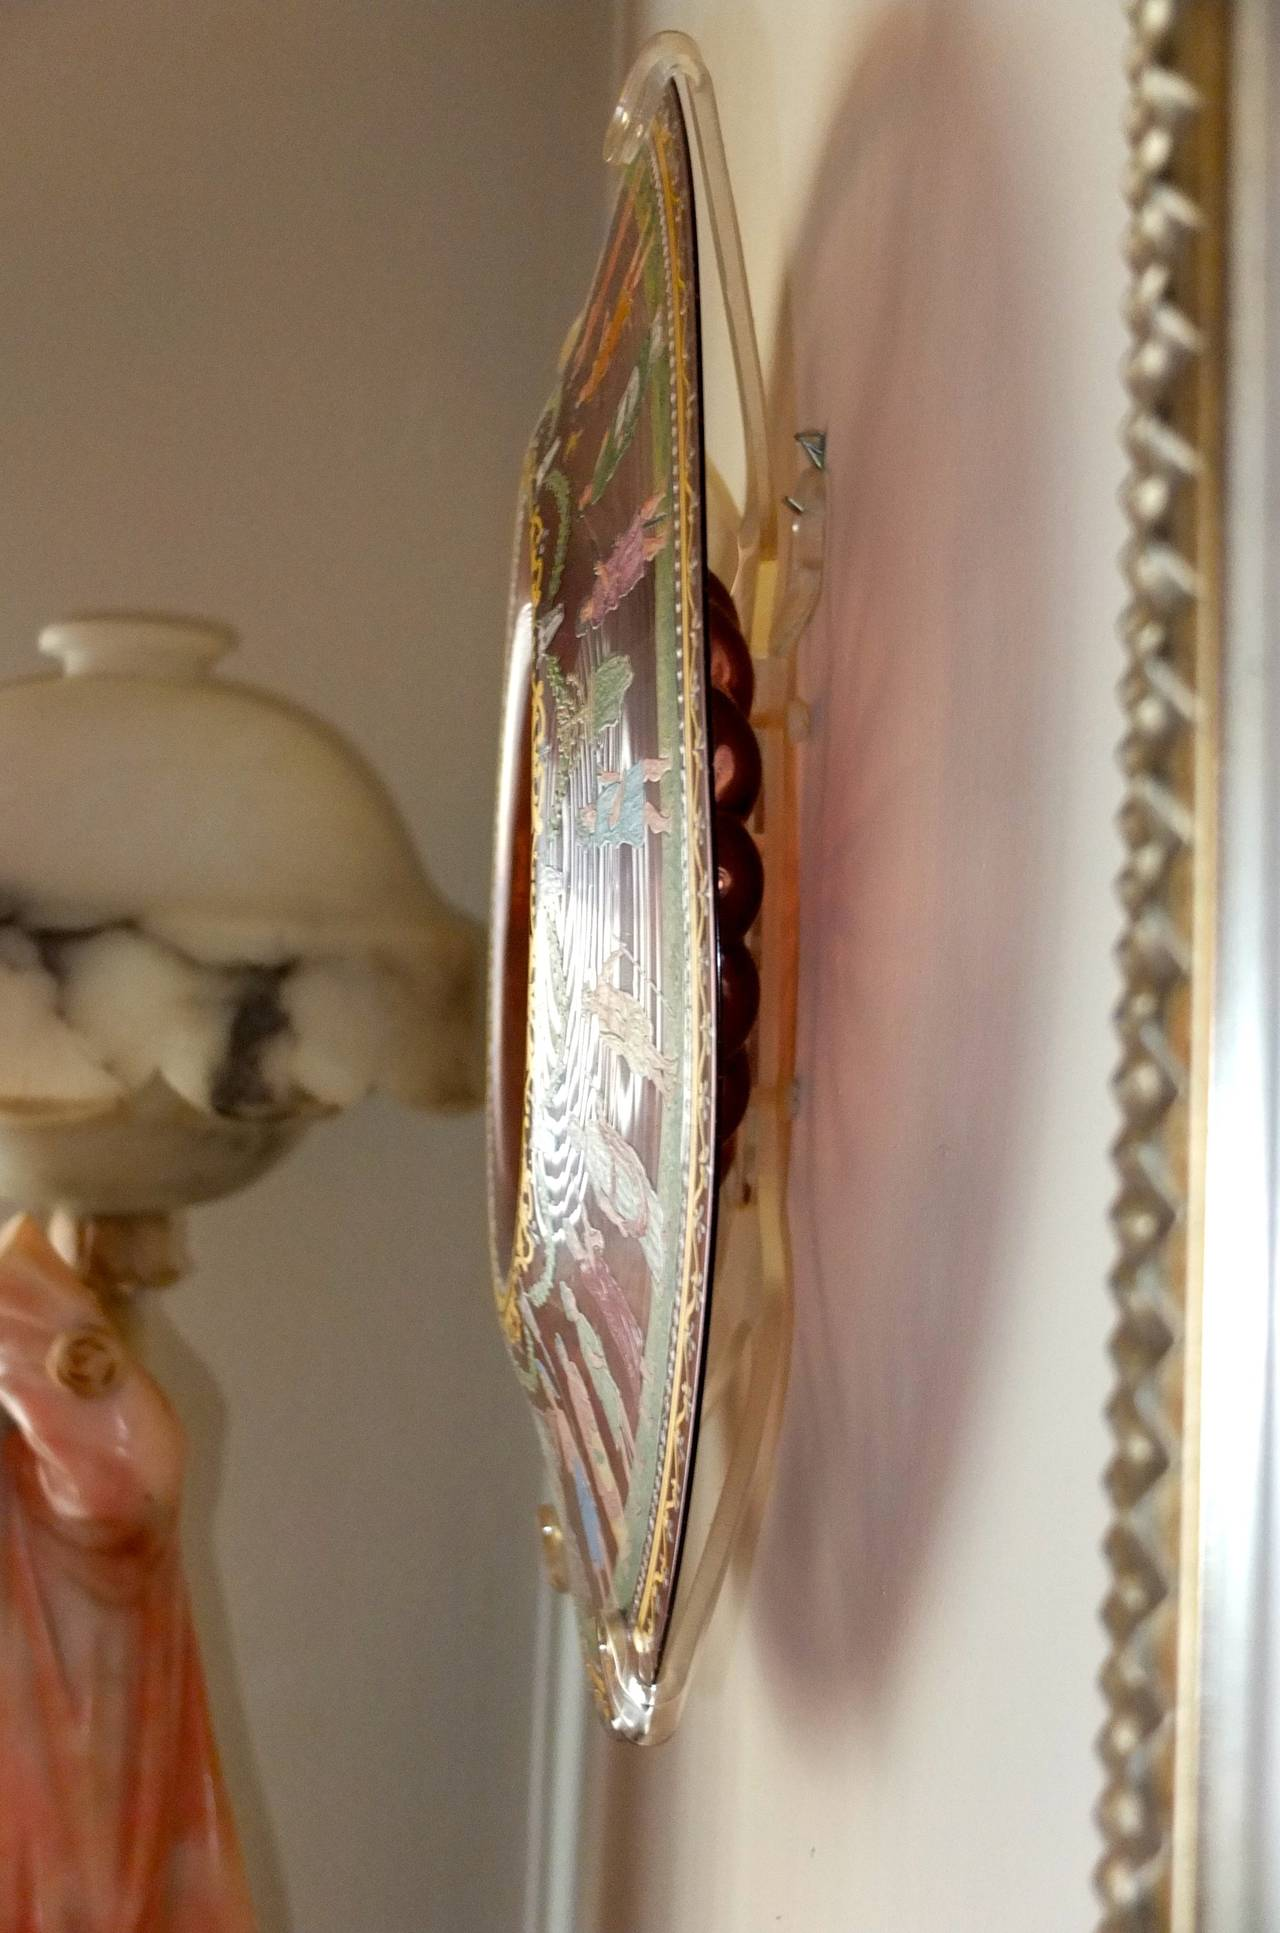 Murano Glass Salviati & C. Venetian Polychrome Enameled and Gilded Glass Centerpiece For Sale